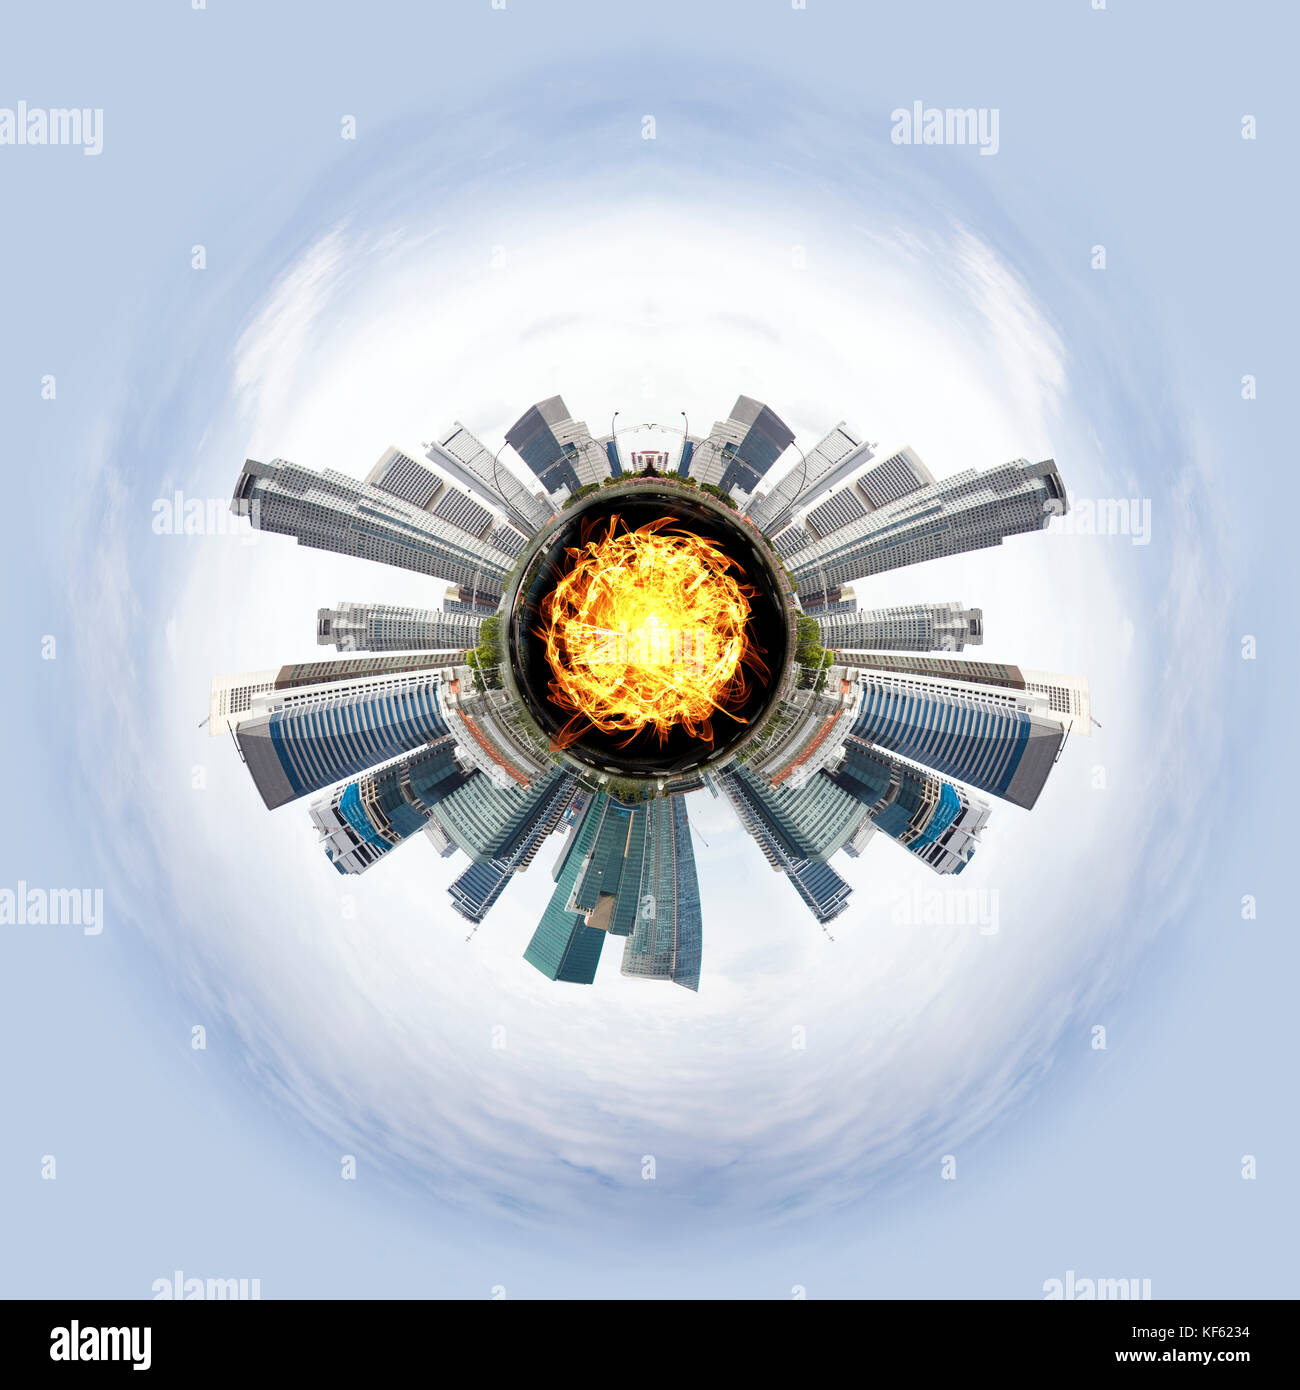 Tiny planet with skyscrapers - Stock Image